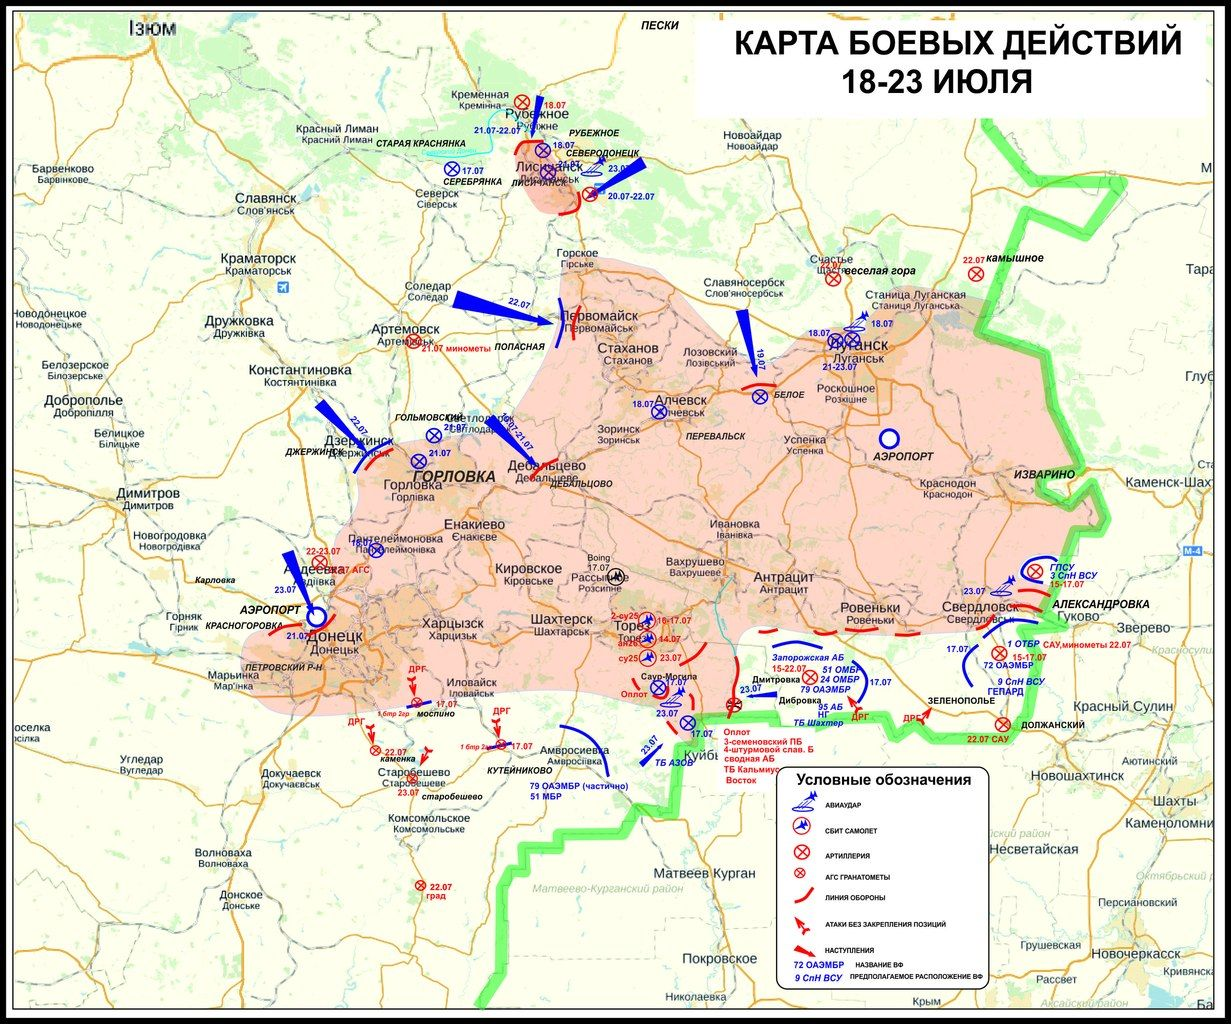 http://warsonline.info/images/stories/news/14/07jul/ukraine/23-24/map23jul14.min.jpg